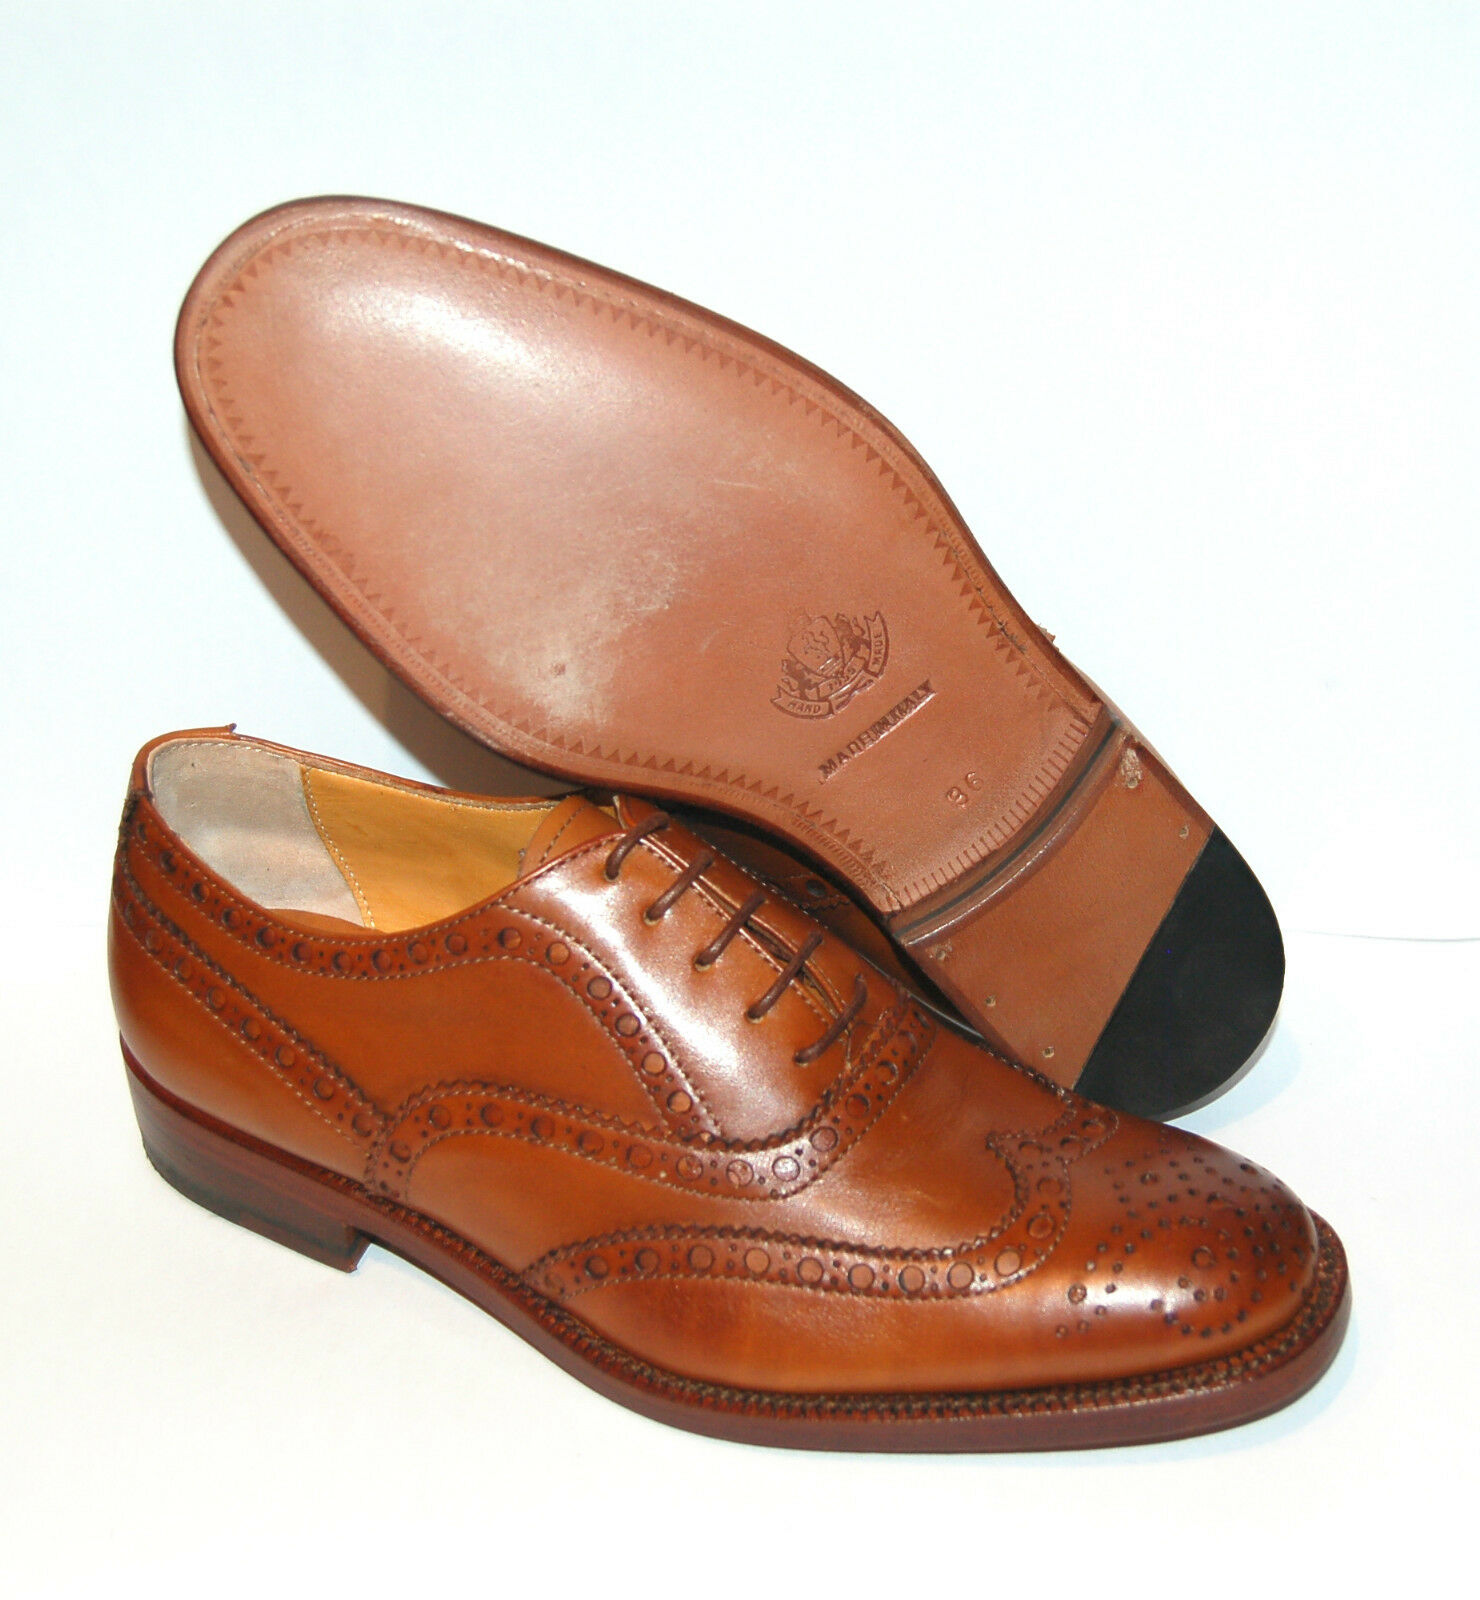 WOMAN - 40 - WINGTIP OXFORD W  PERF & MED - BOMBAY TAN CALF - LEATHER SOLE